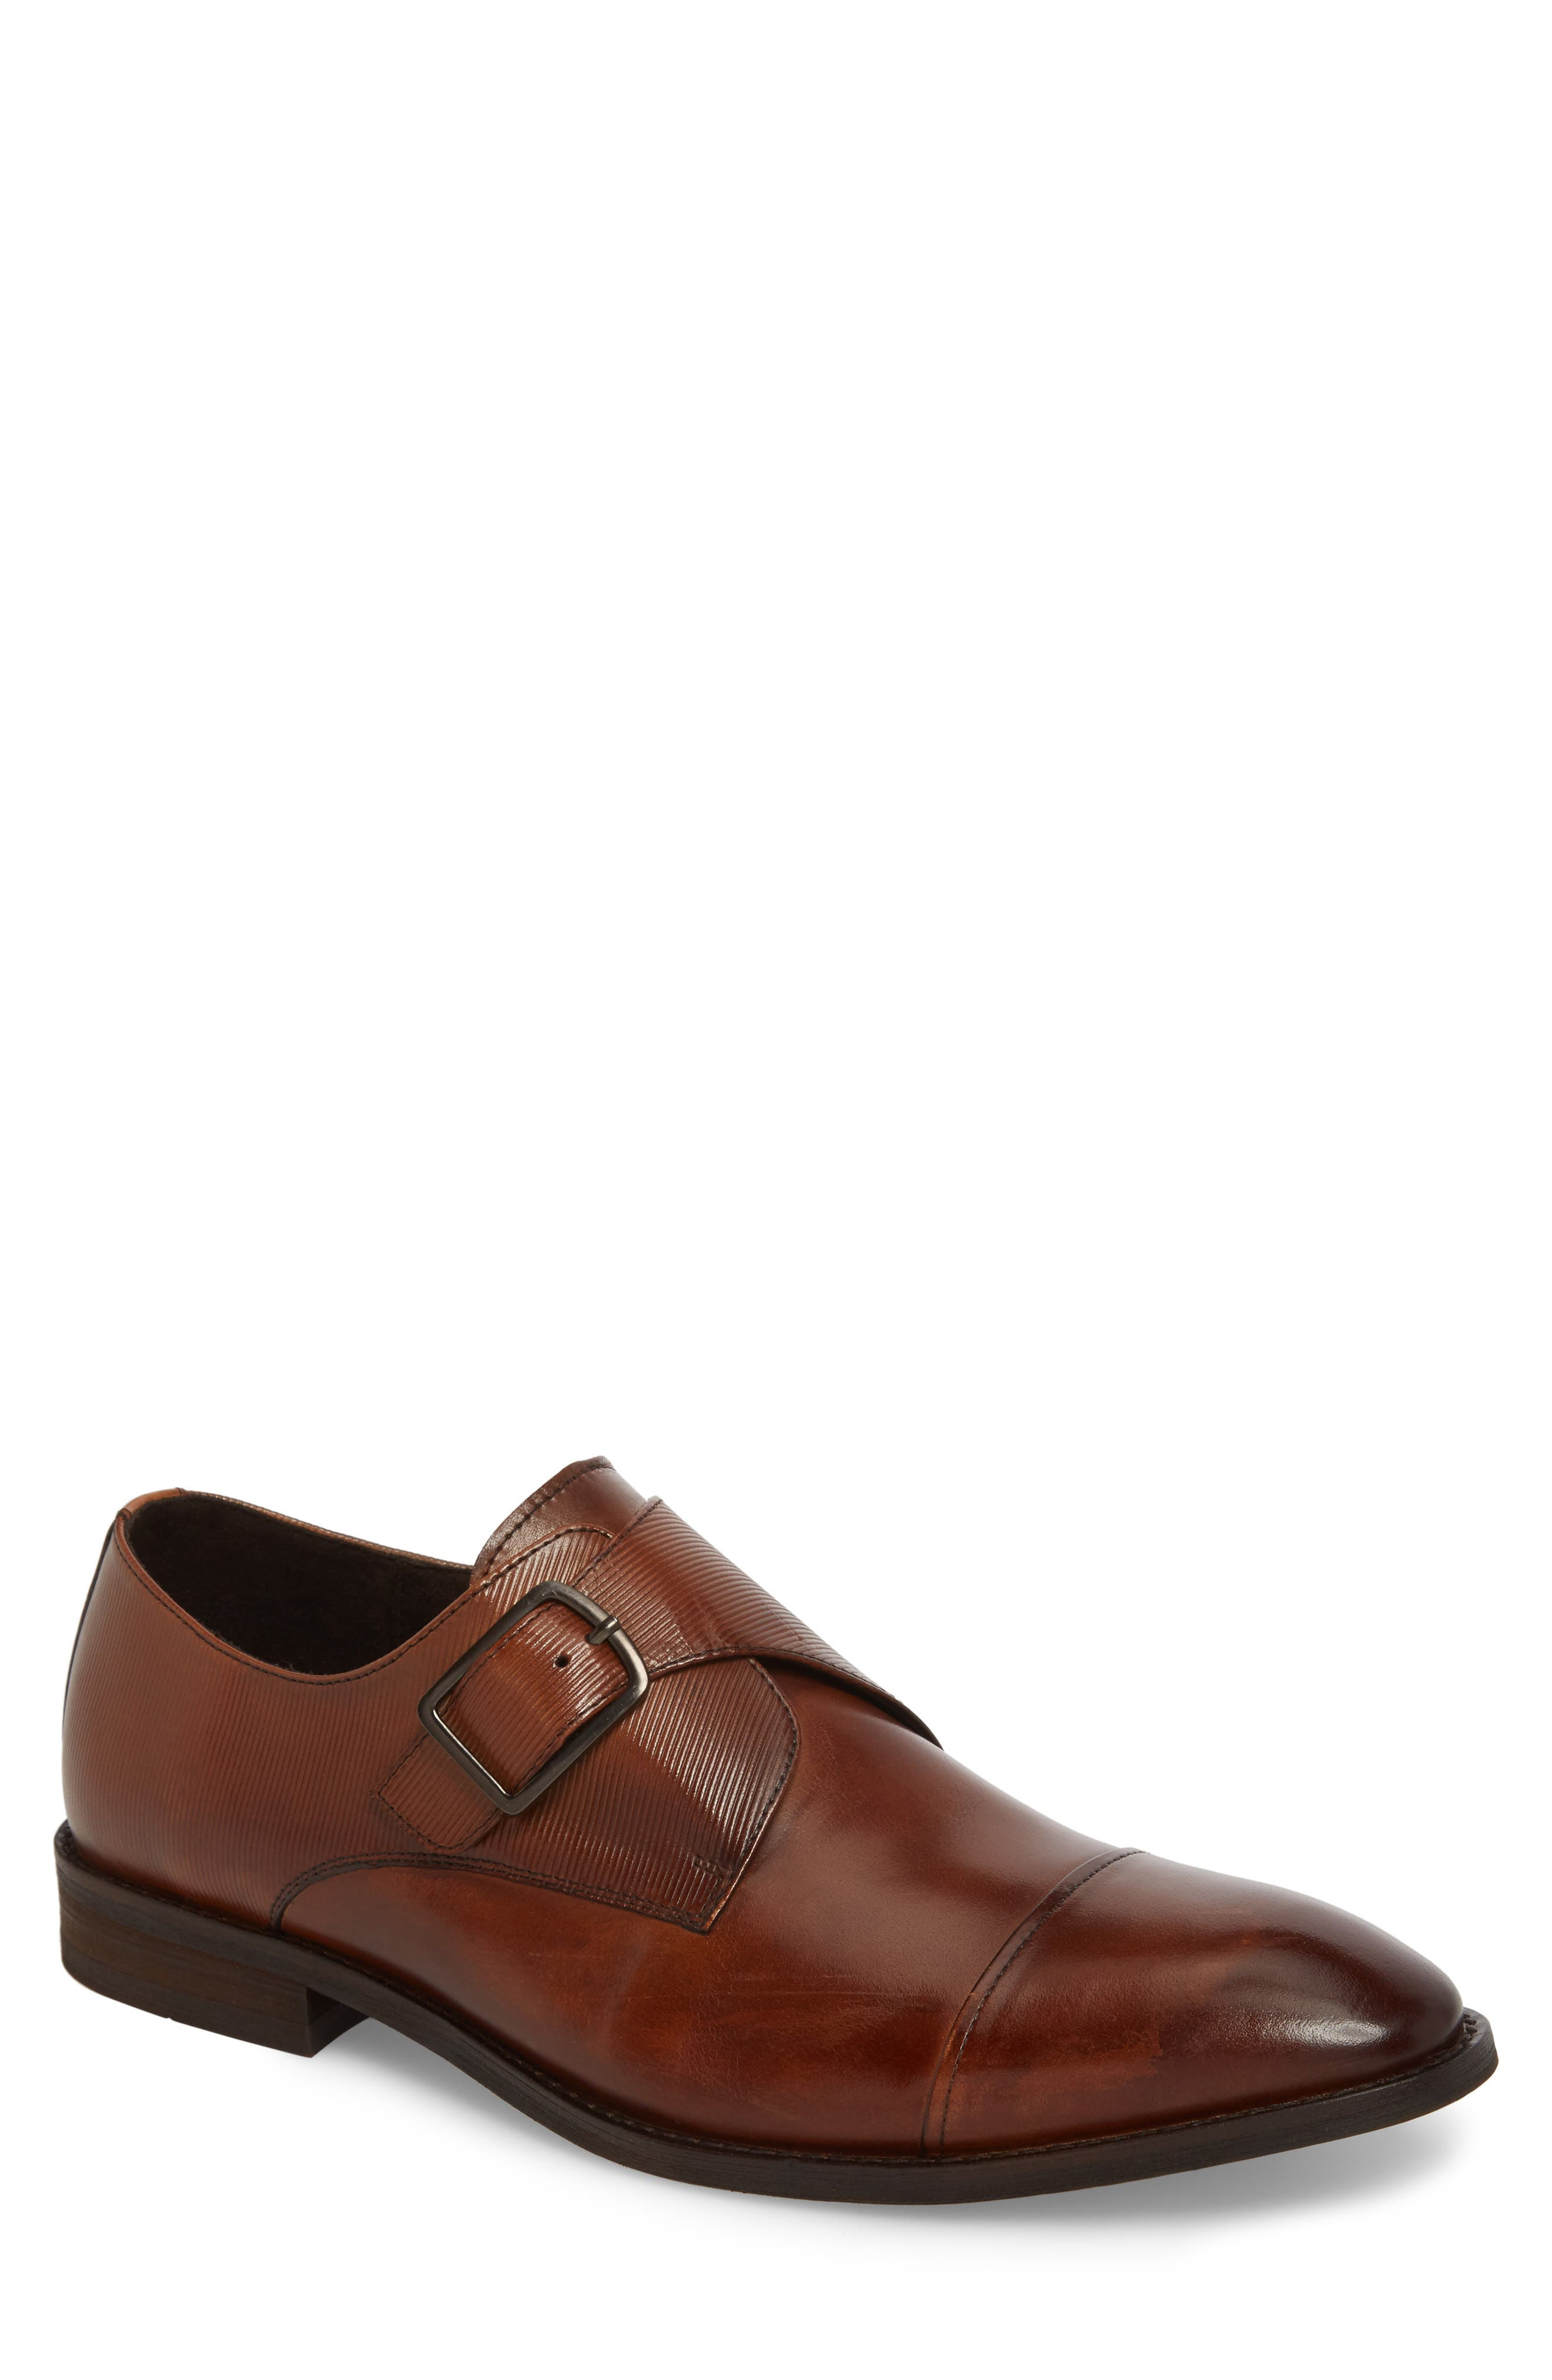 KENNETH COLE NEW YORK,                             Courage Monk Strap Shoe,                             Main thumbnail 1, color,                             200